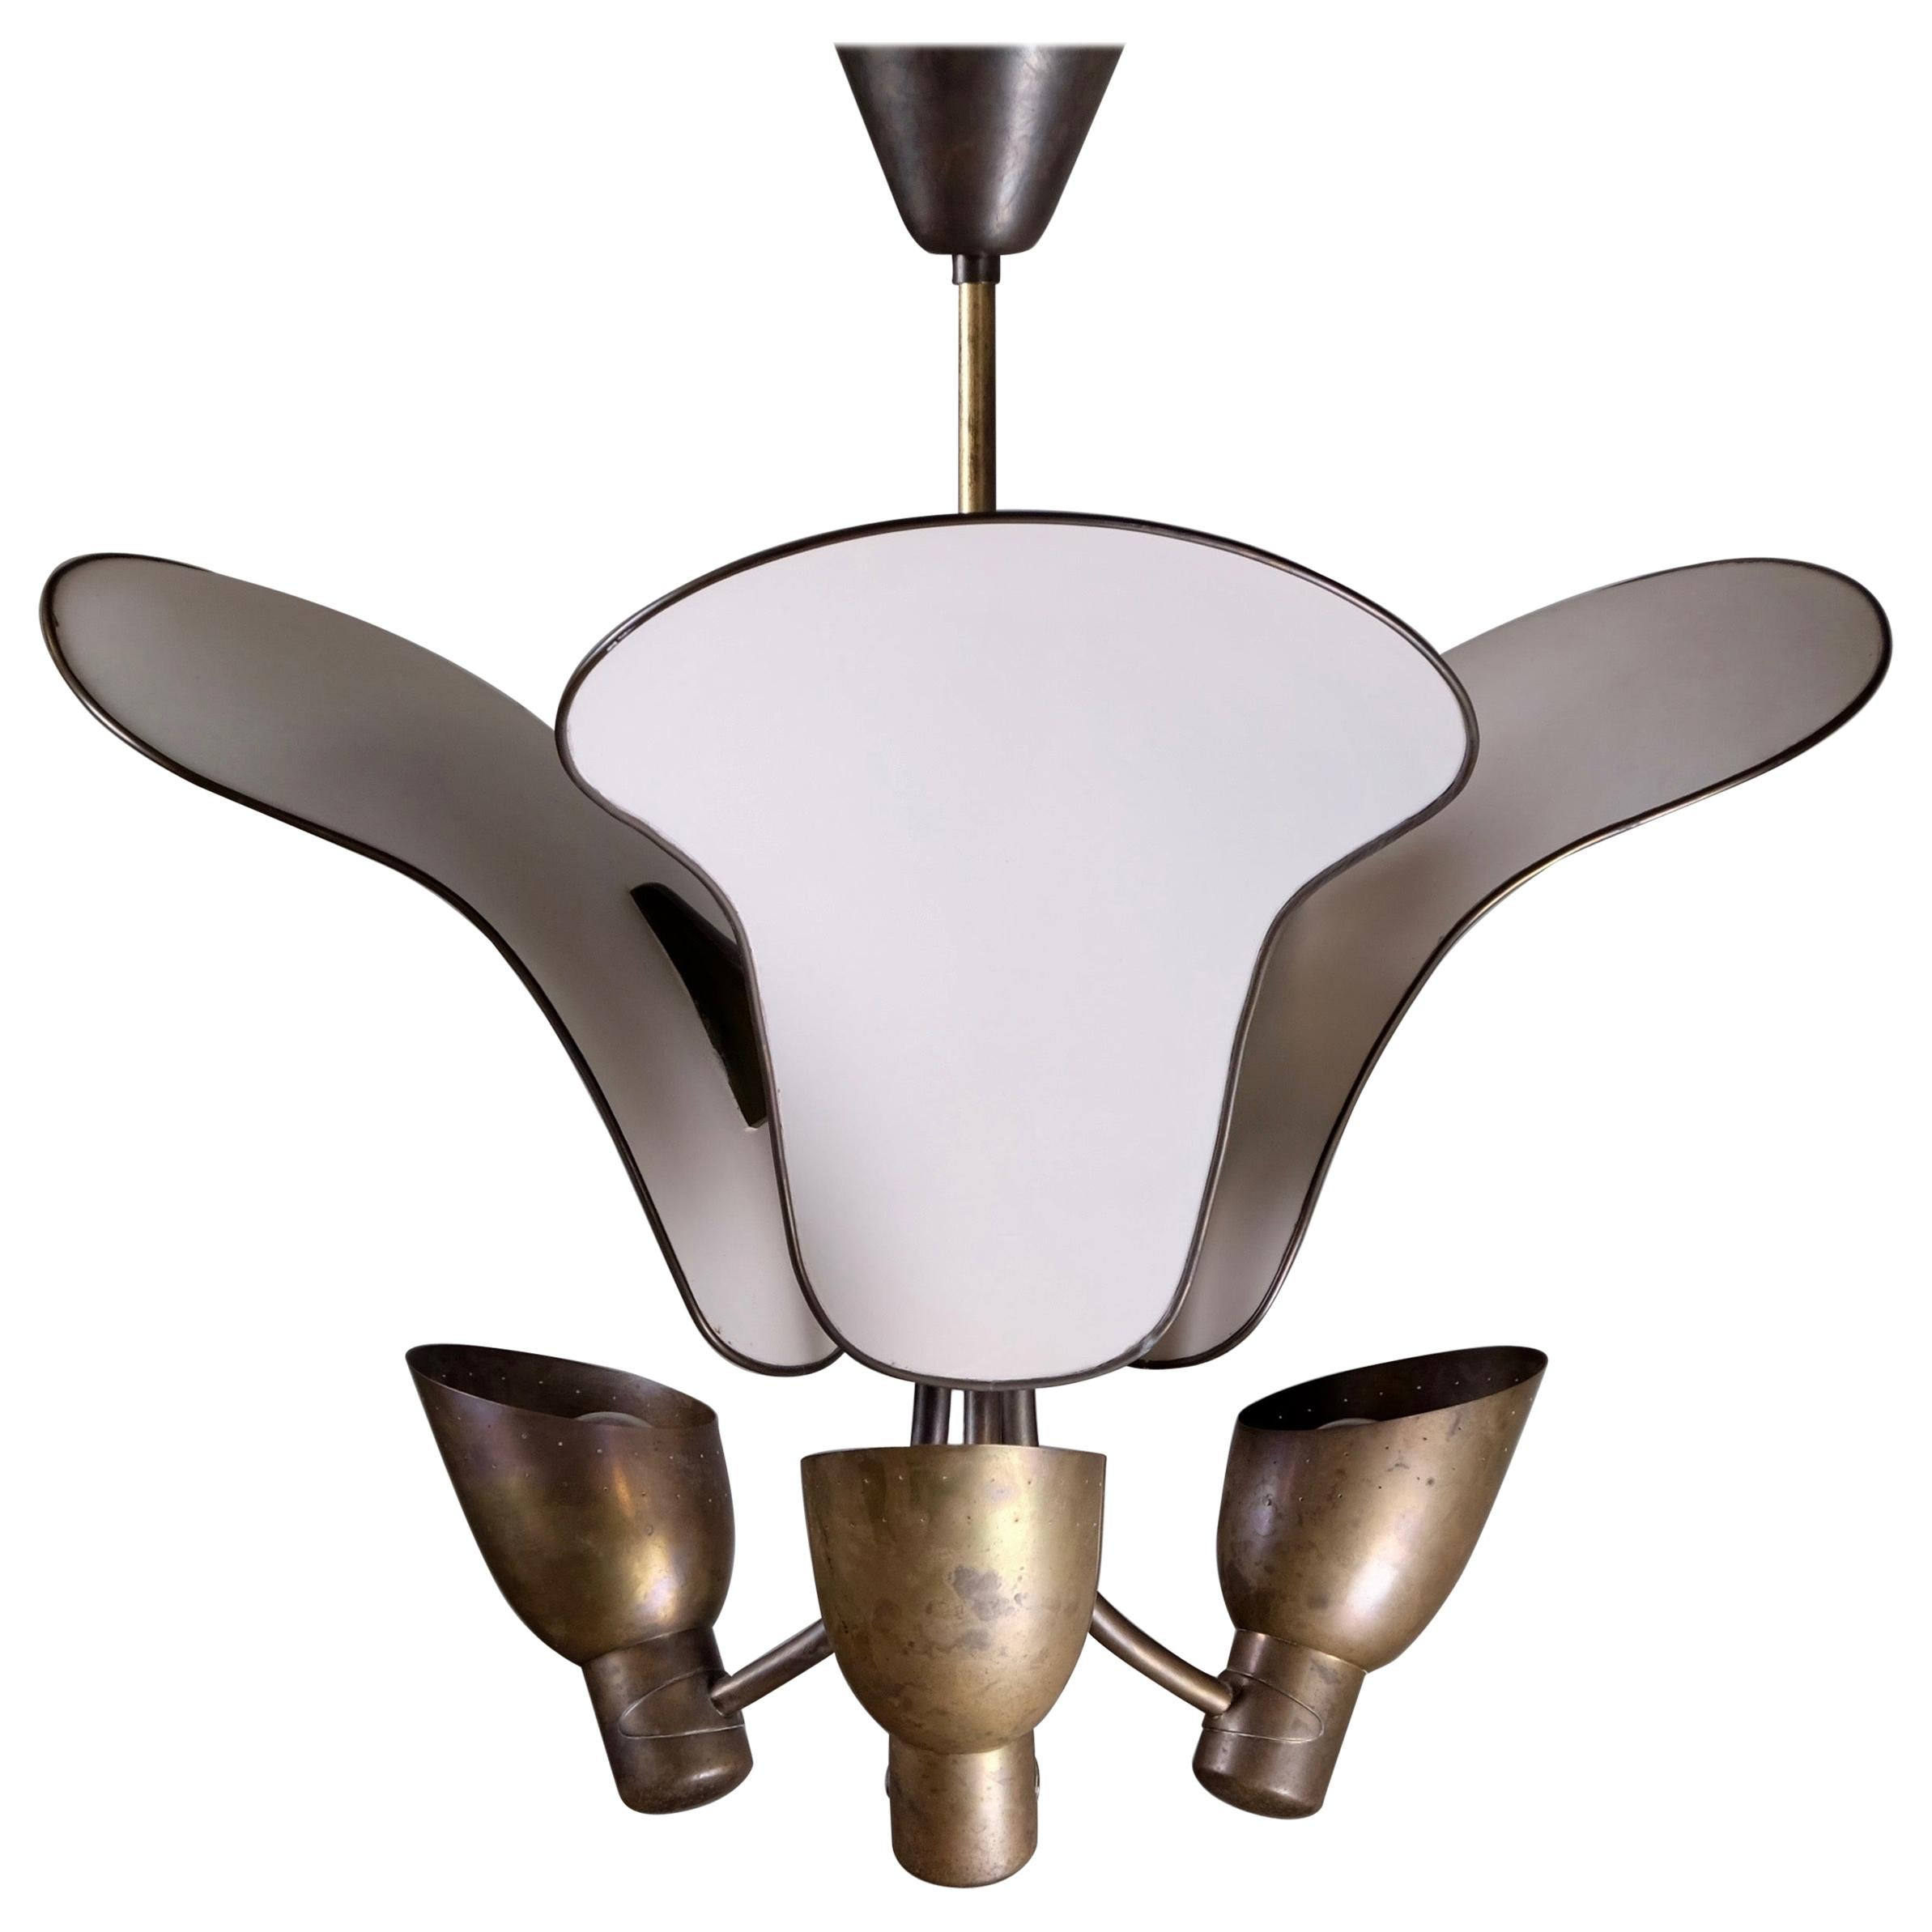 Rare Brass Light by Carl-Axel Acking, 1940s